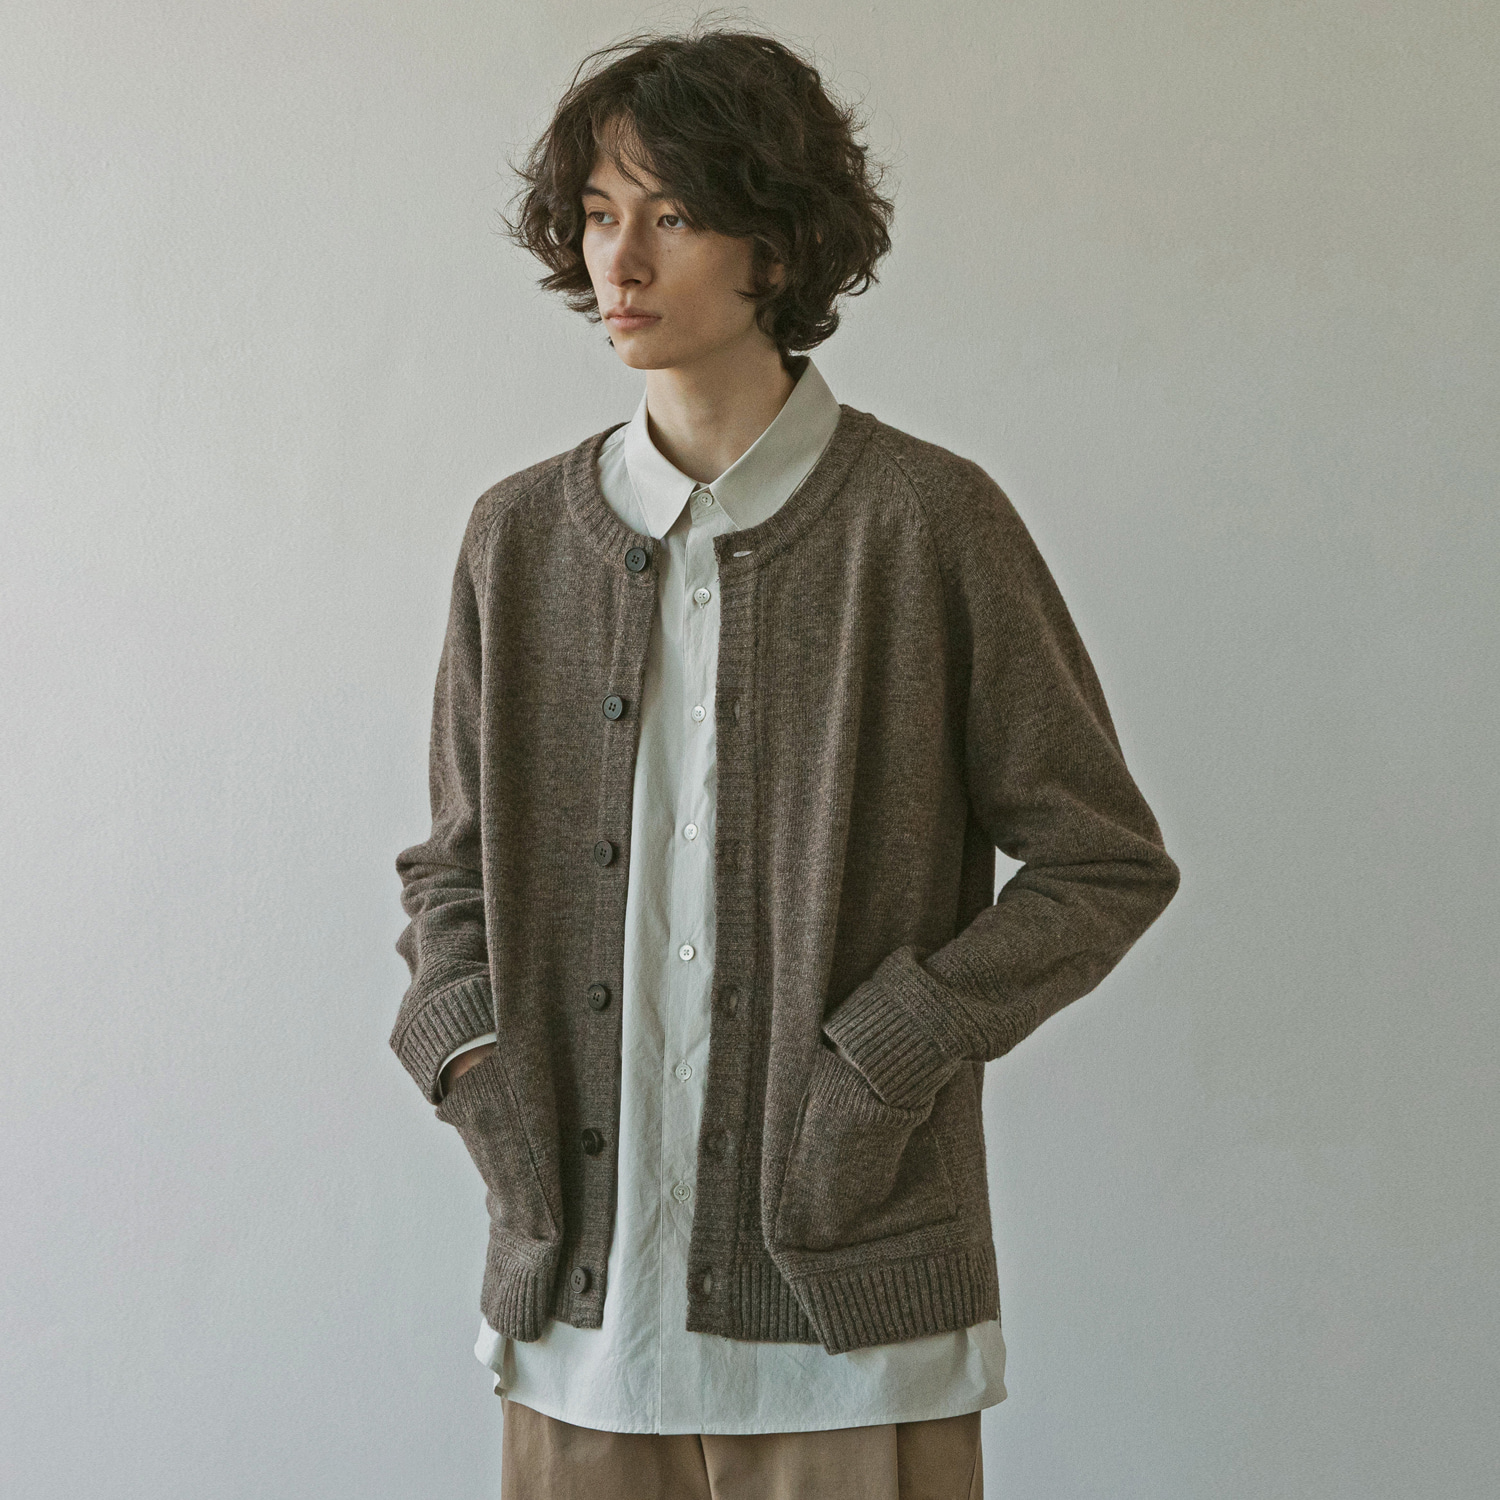 21SS Gentle Link Cardigan (Earth)